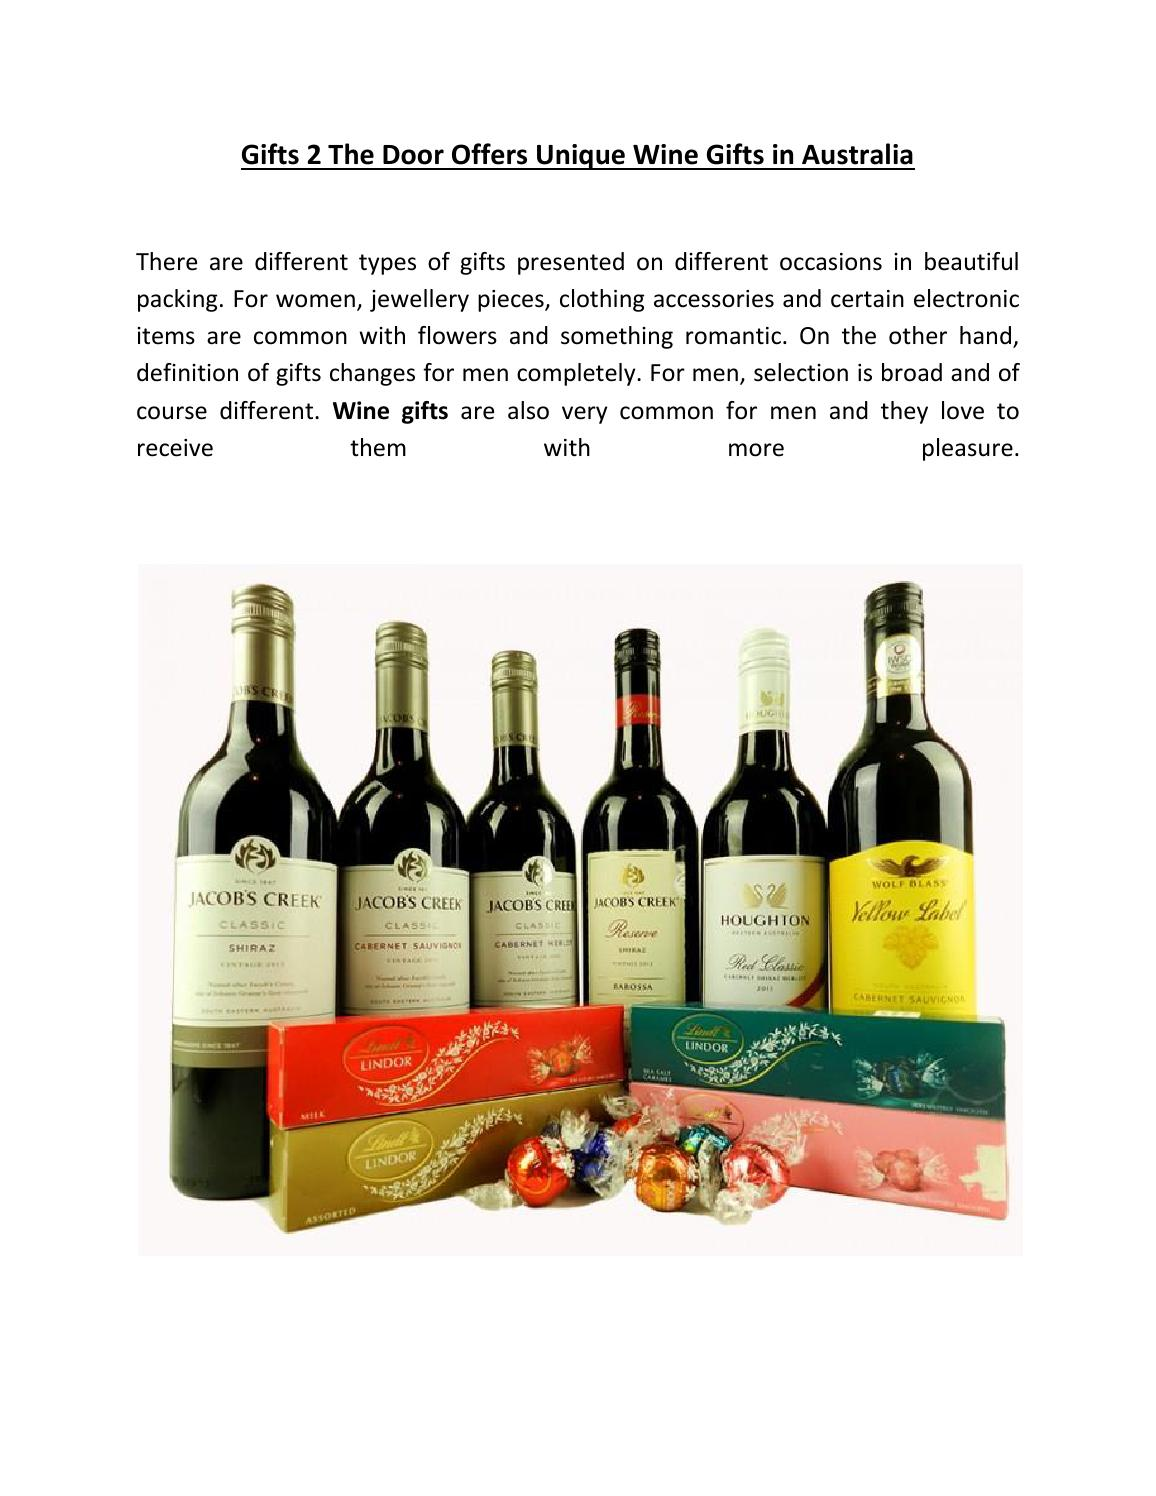 Wine Online Australia Online Unique Wine Gift Delivery In Australia By Gifts 2 The Door